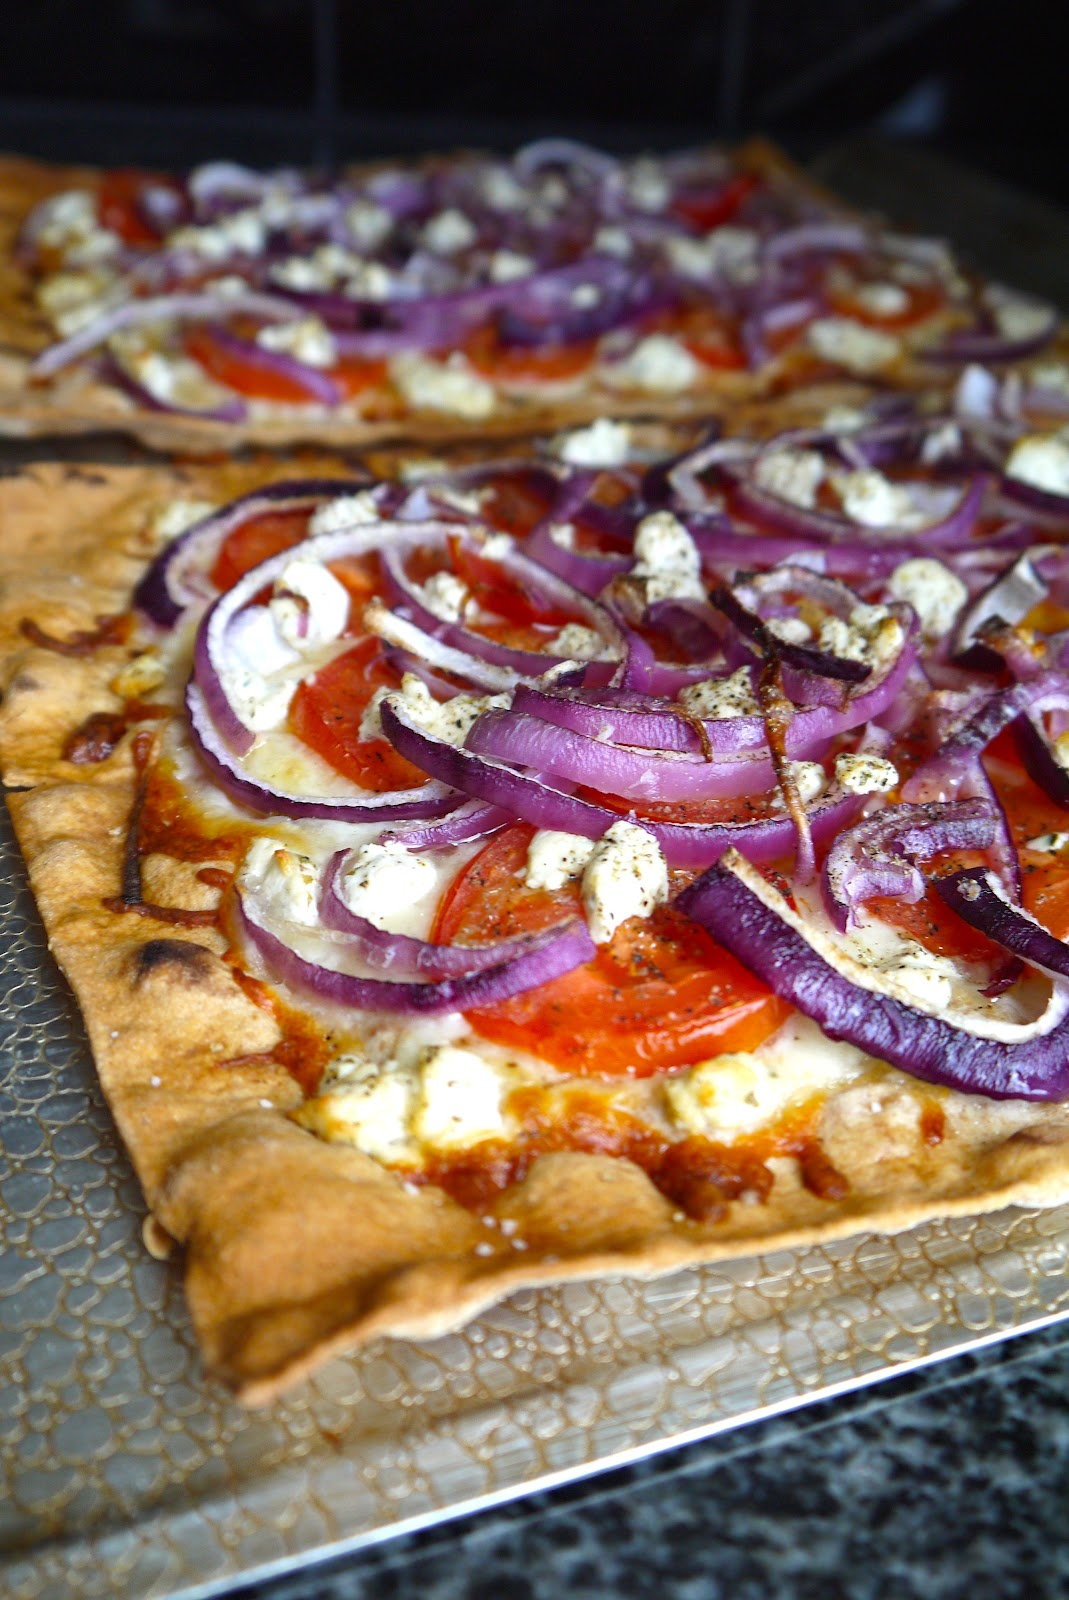 No Dough Pizza Recipe